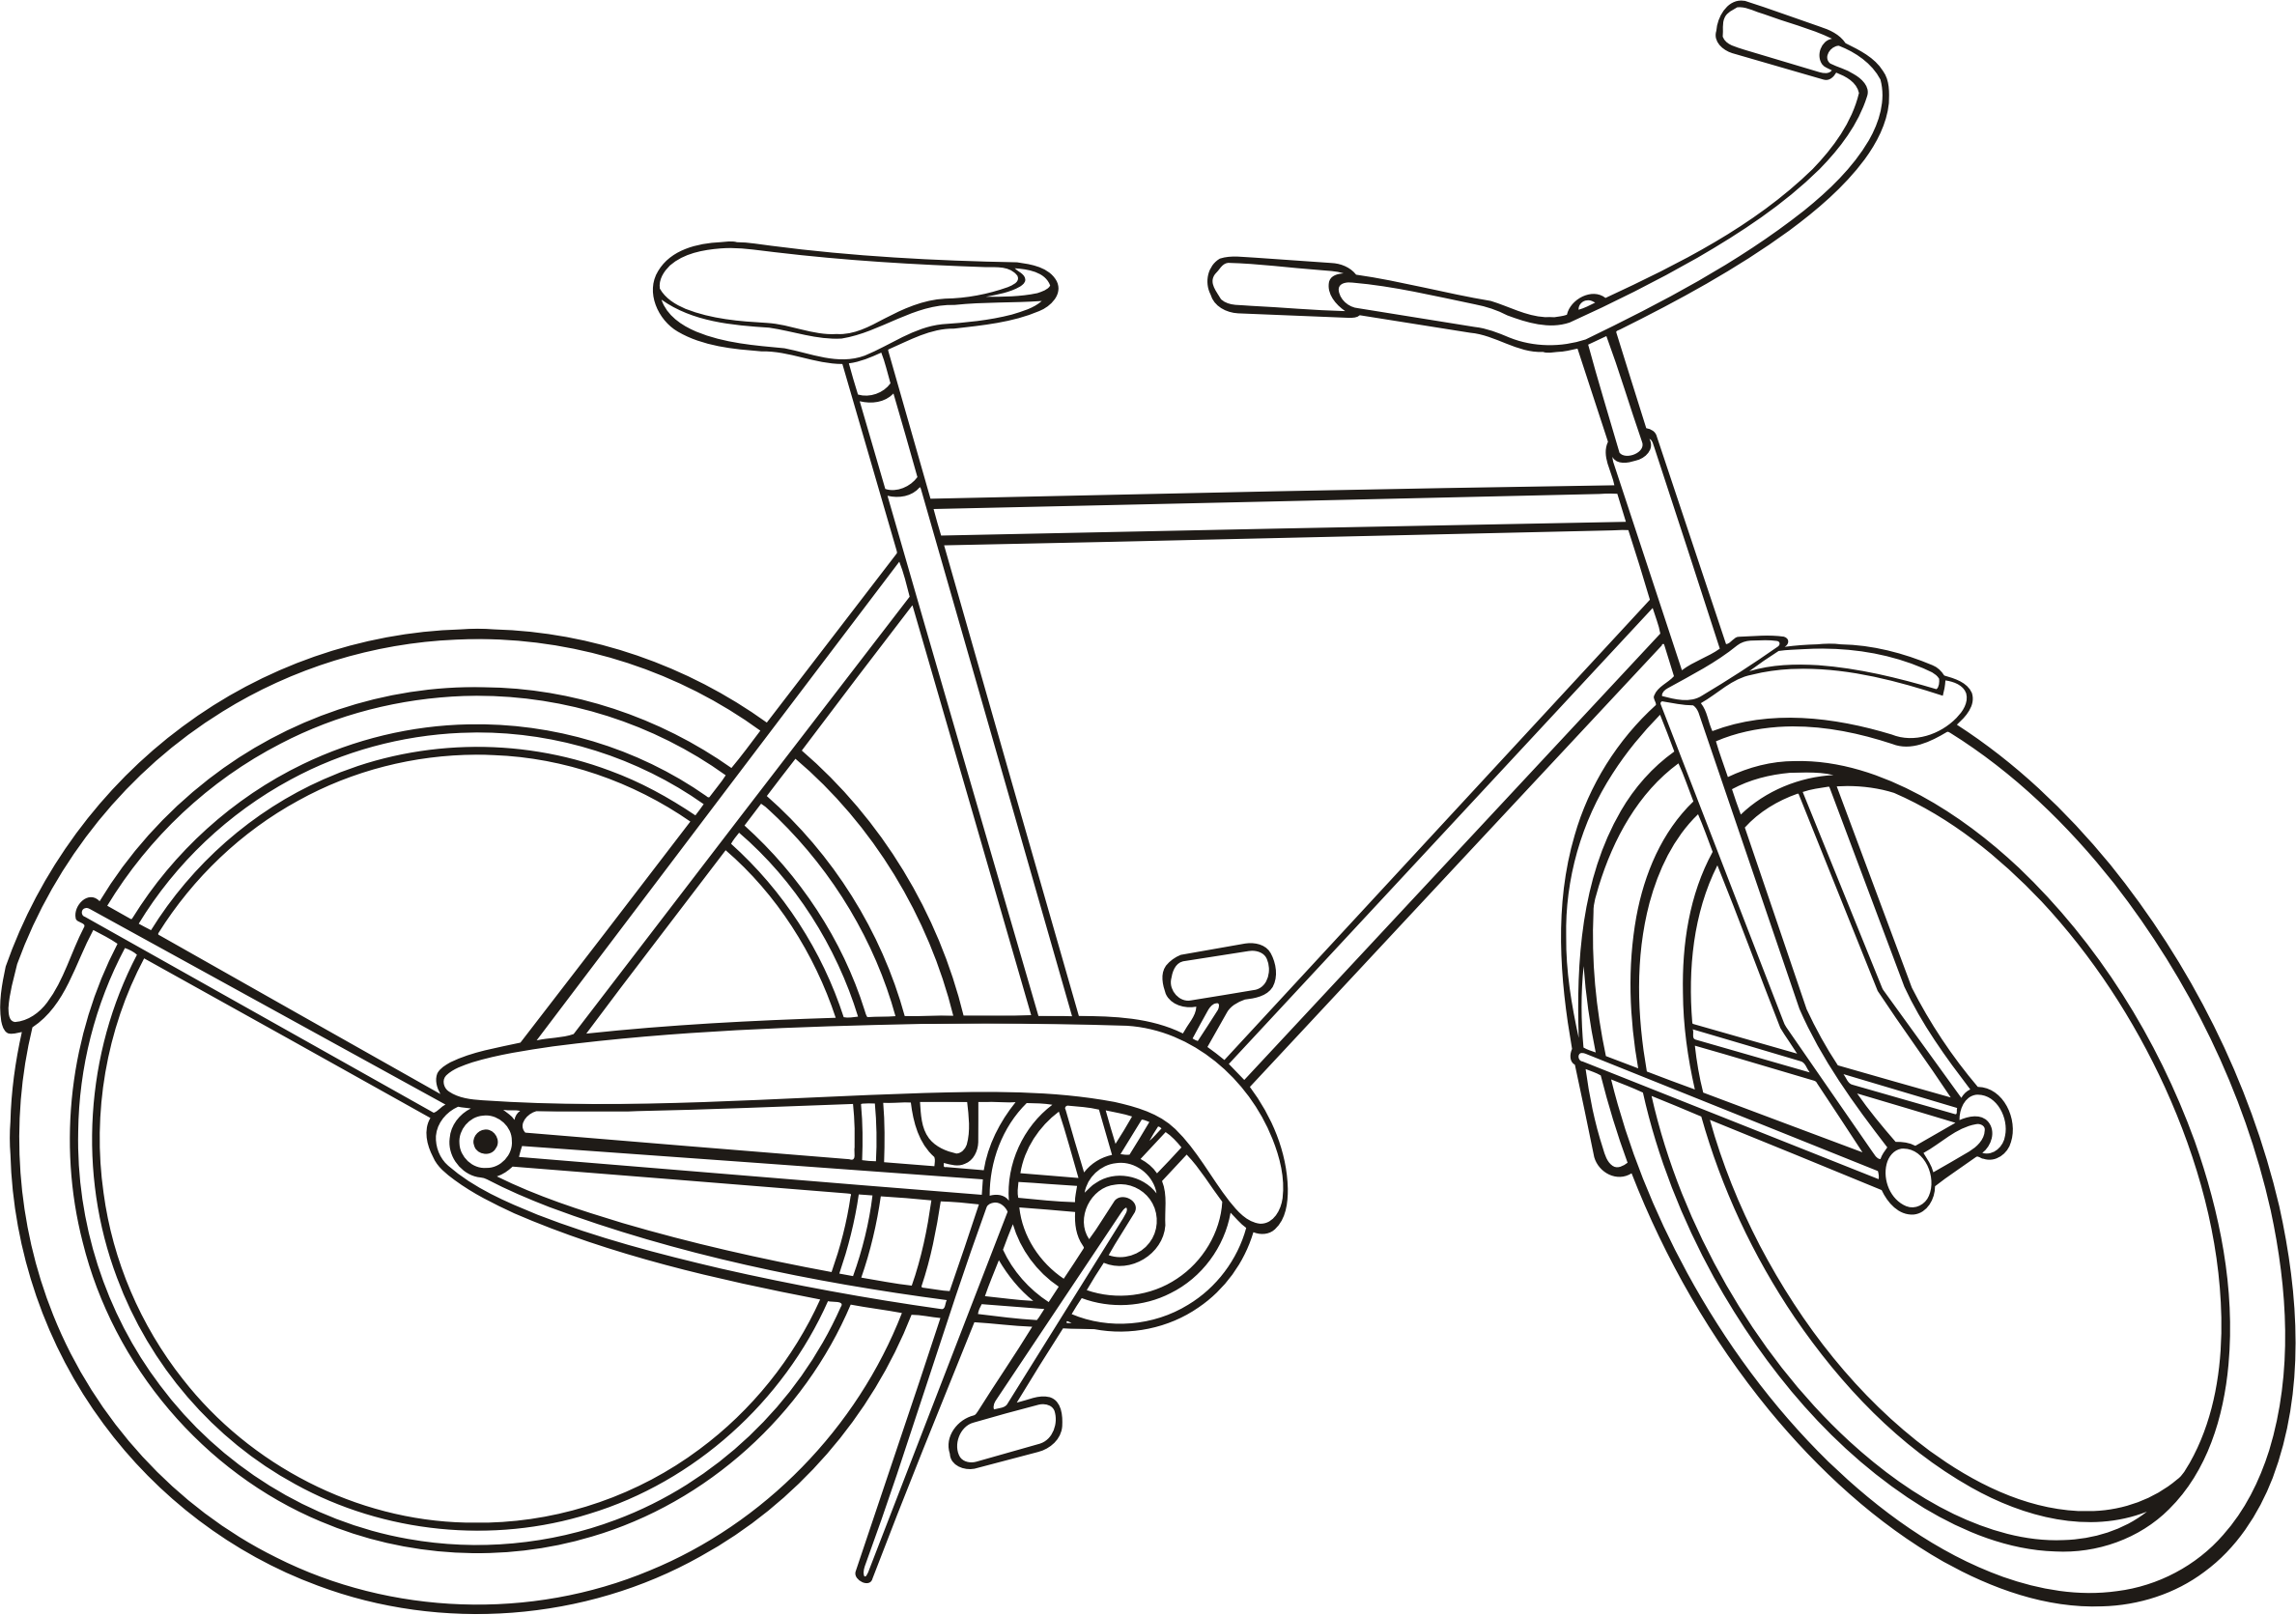 Bike 3 Outline With Images